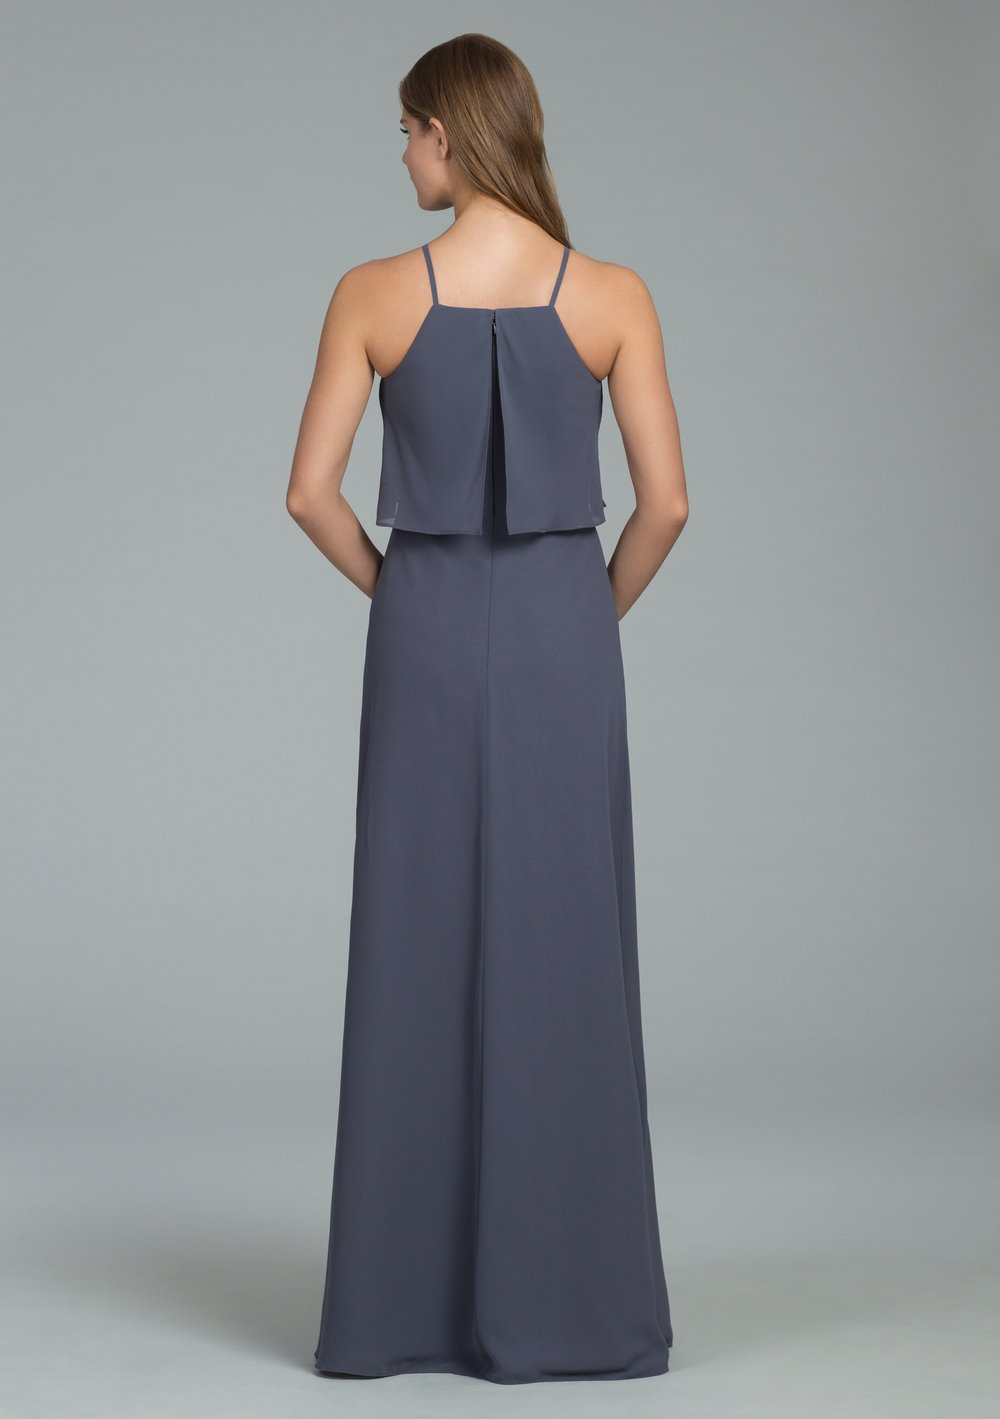 Back detail in gunmetal of Hayley Paige Occasions Bridesmaids Special Occasion Spring 2018 style 5807